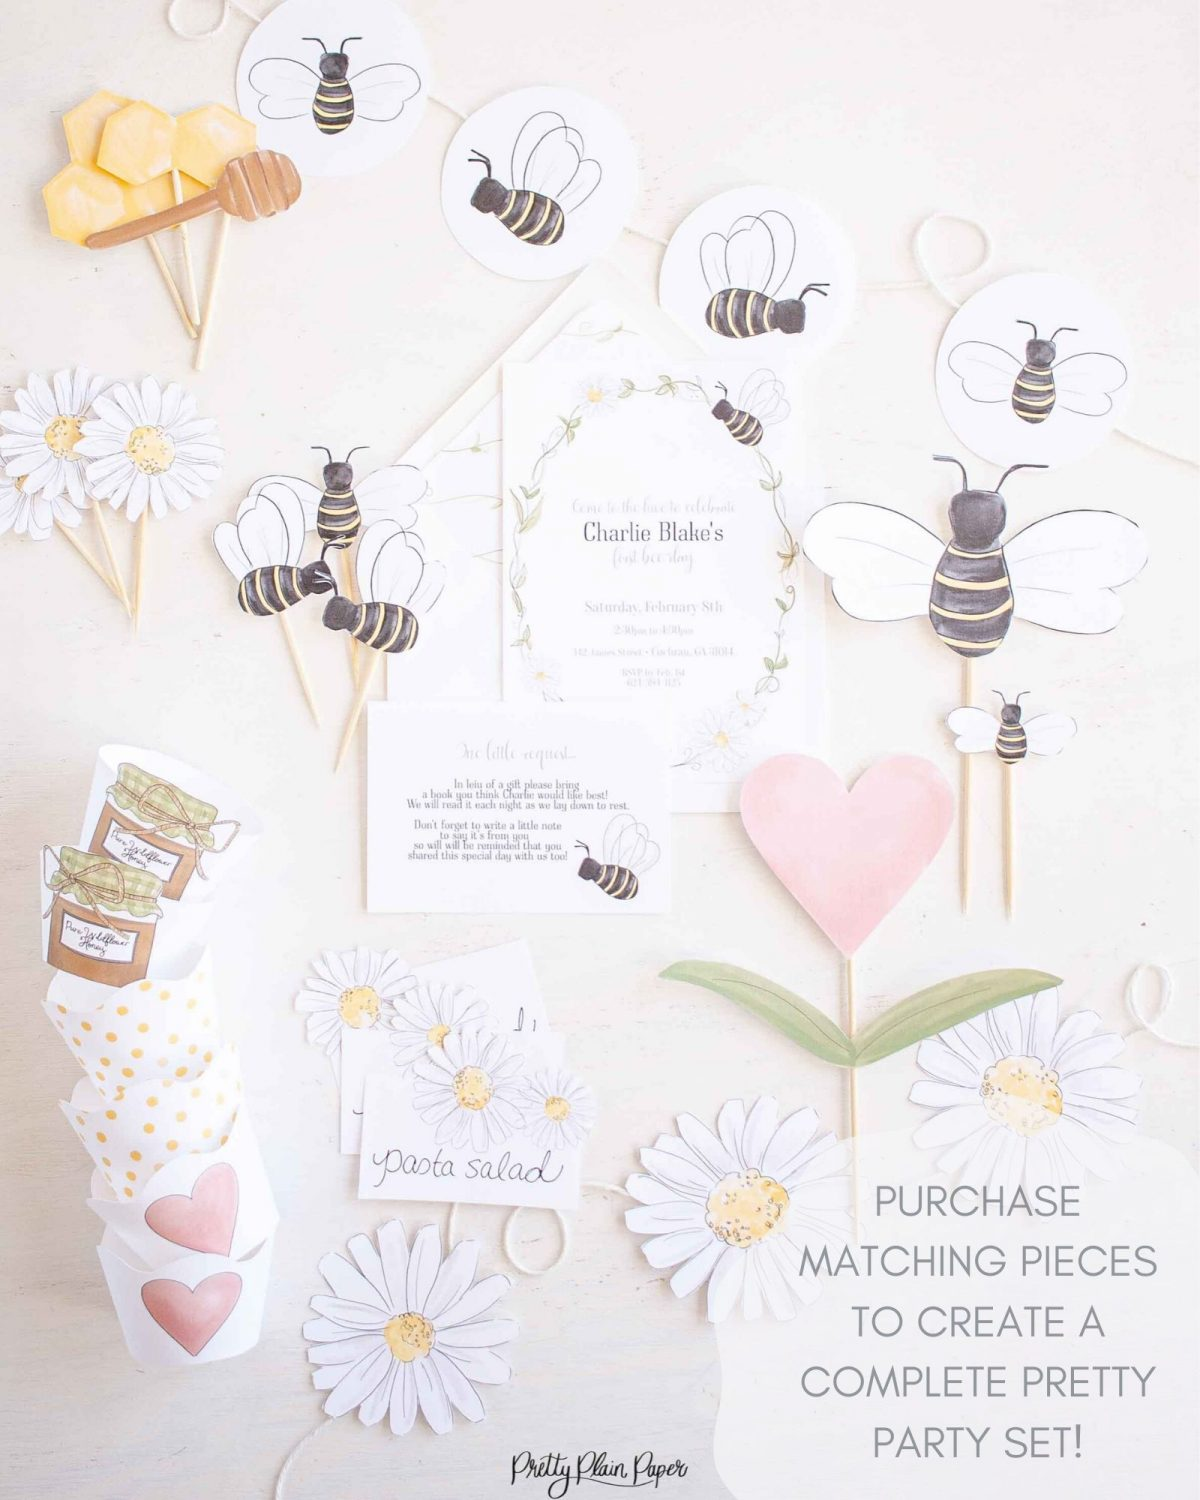 Bee & Honey Birthday Party Printable Party Set by Pretty Plain Paper